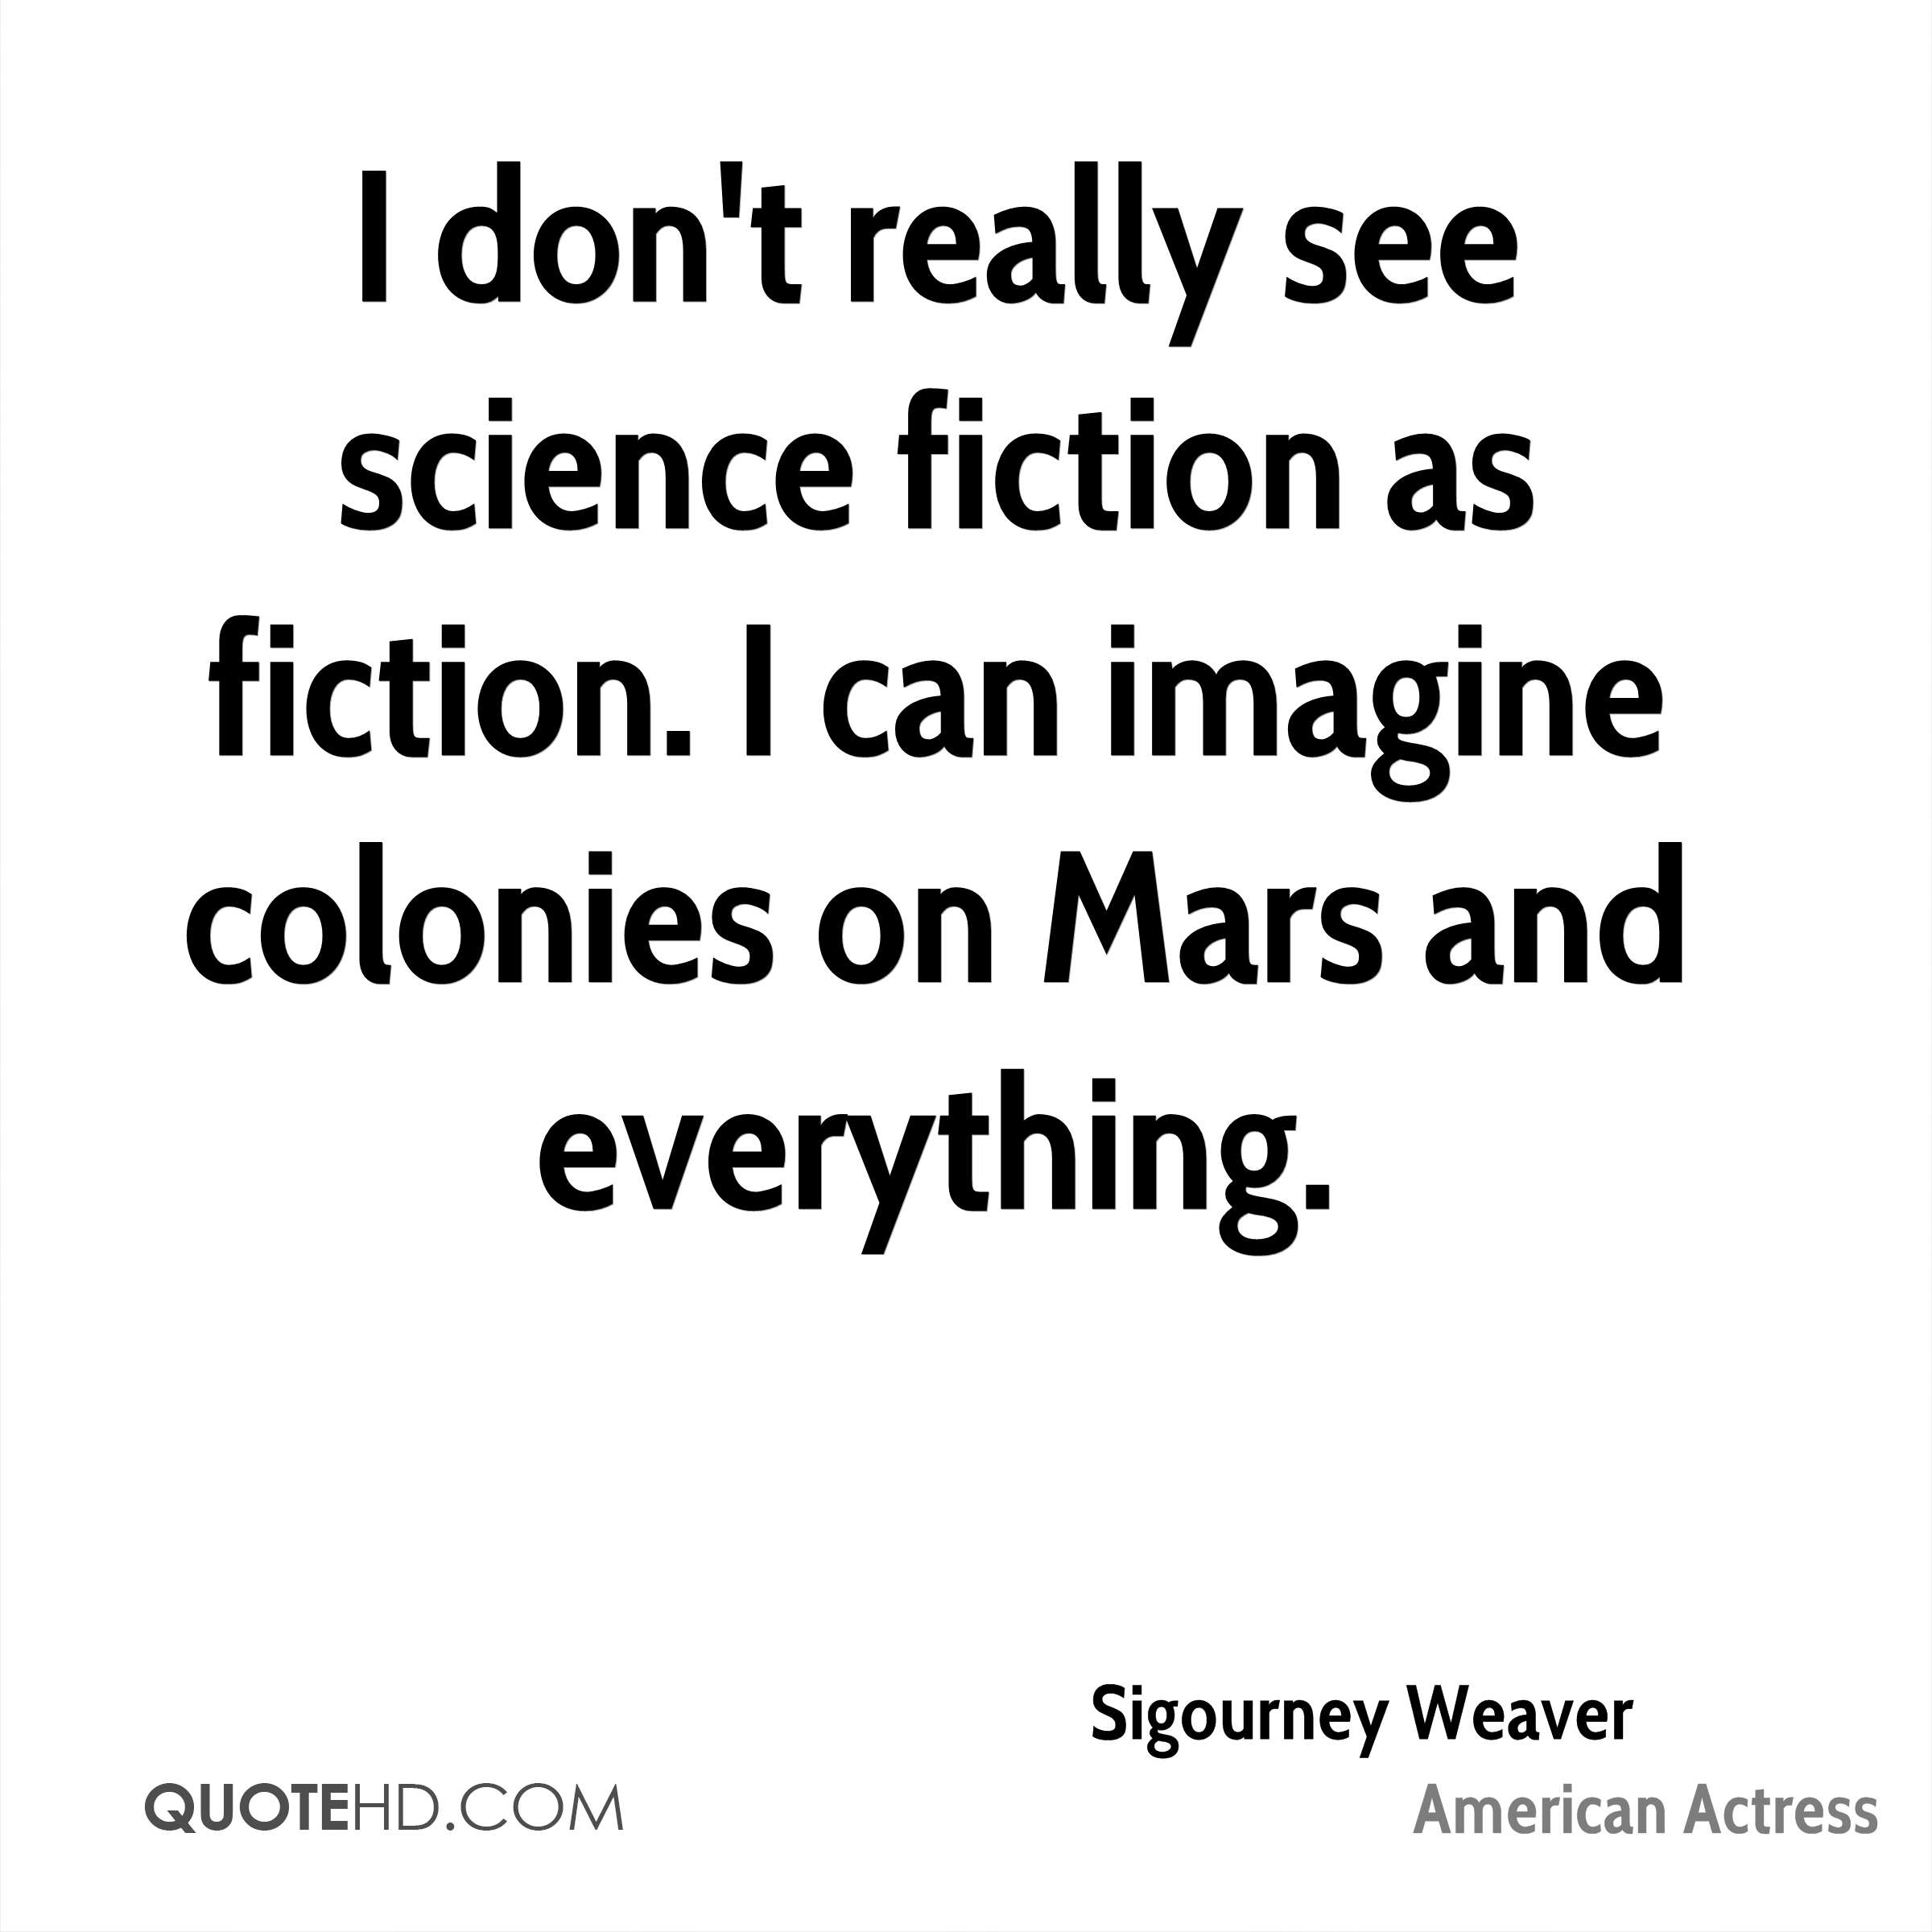 I don't really see science fiction as fiction. I can imagine colonies on Mars and everything.